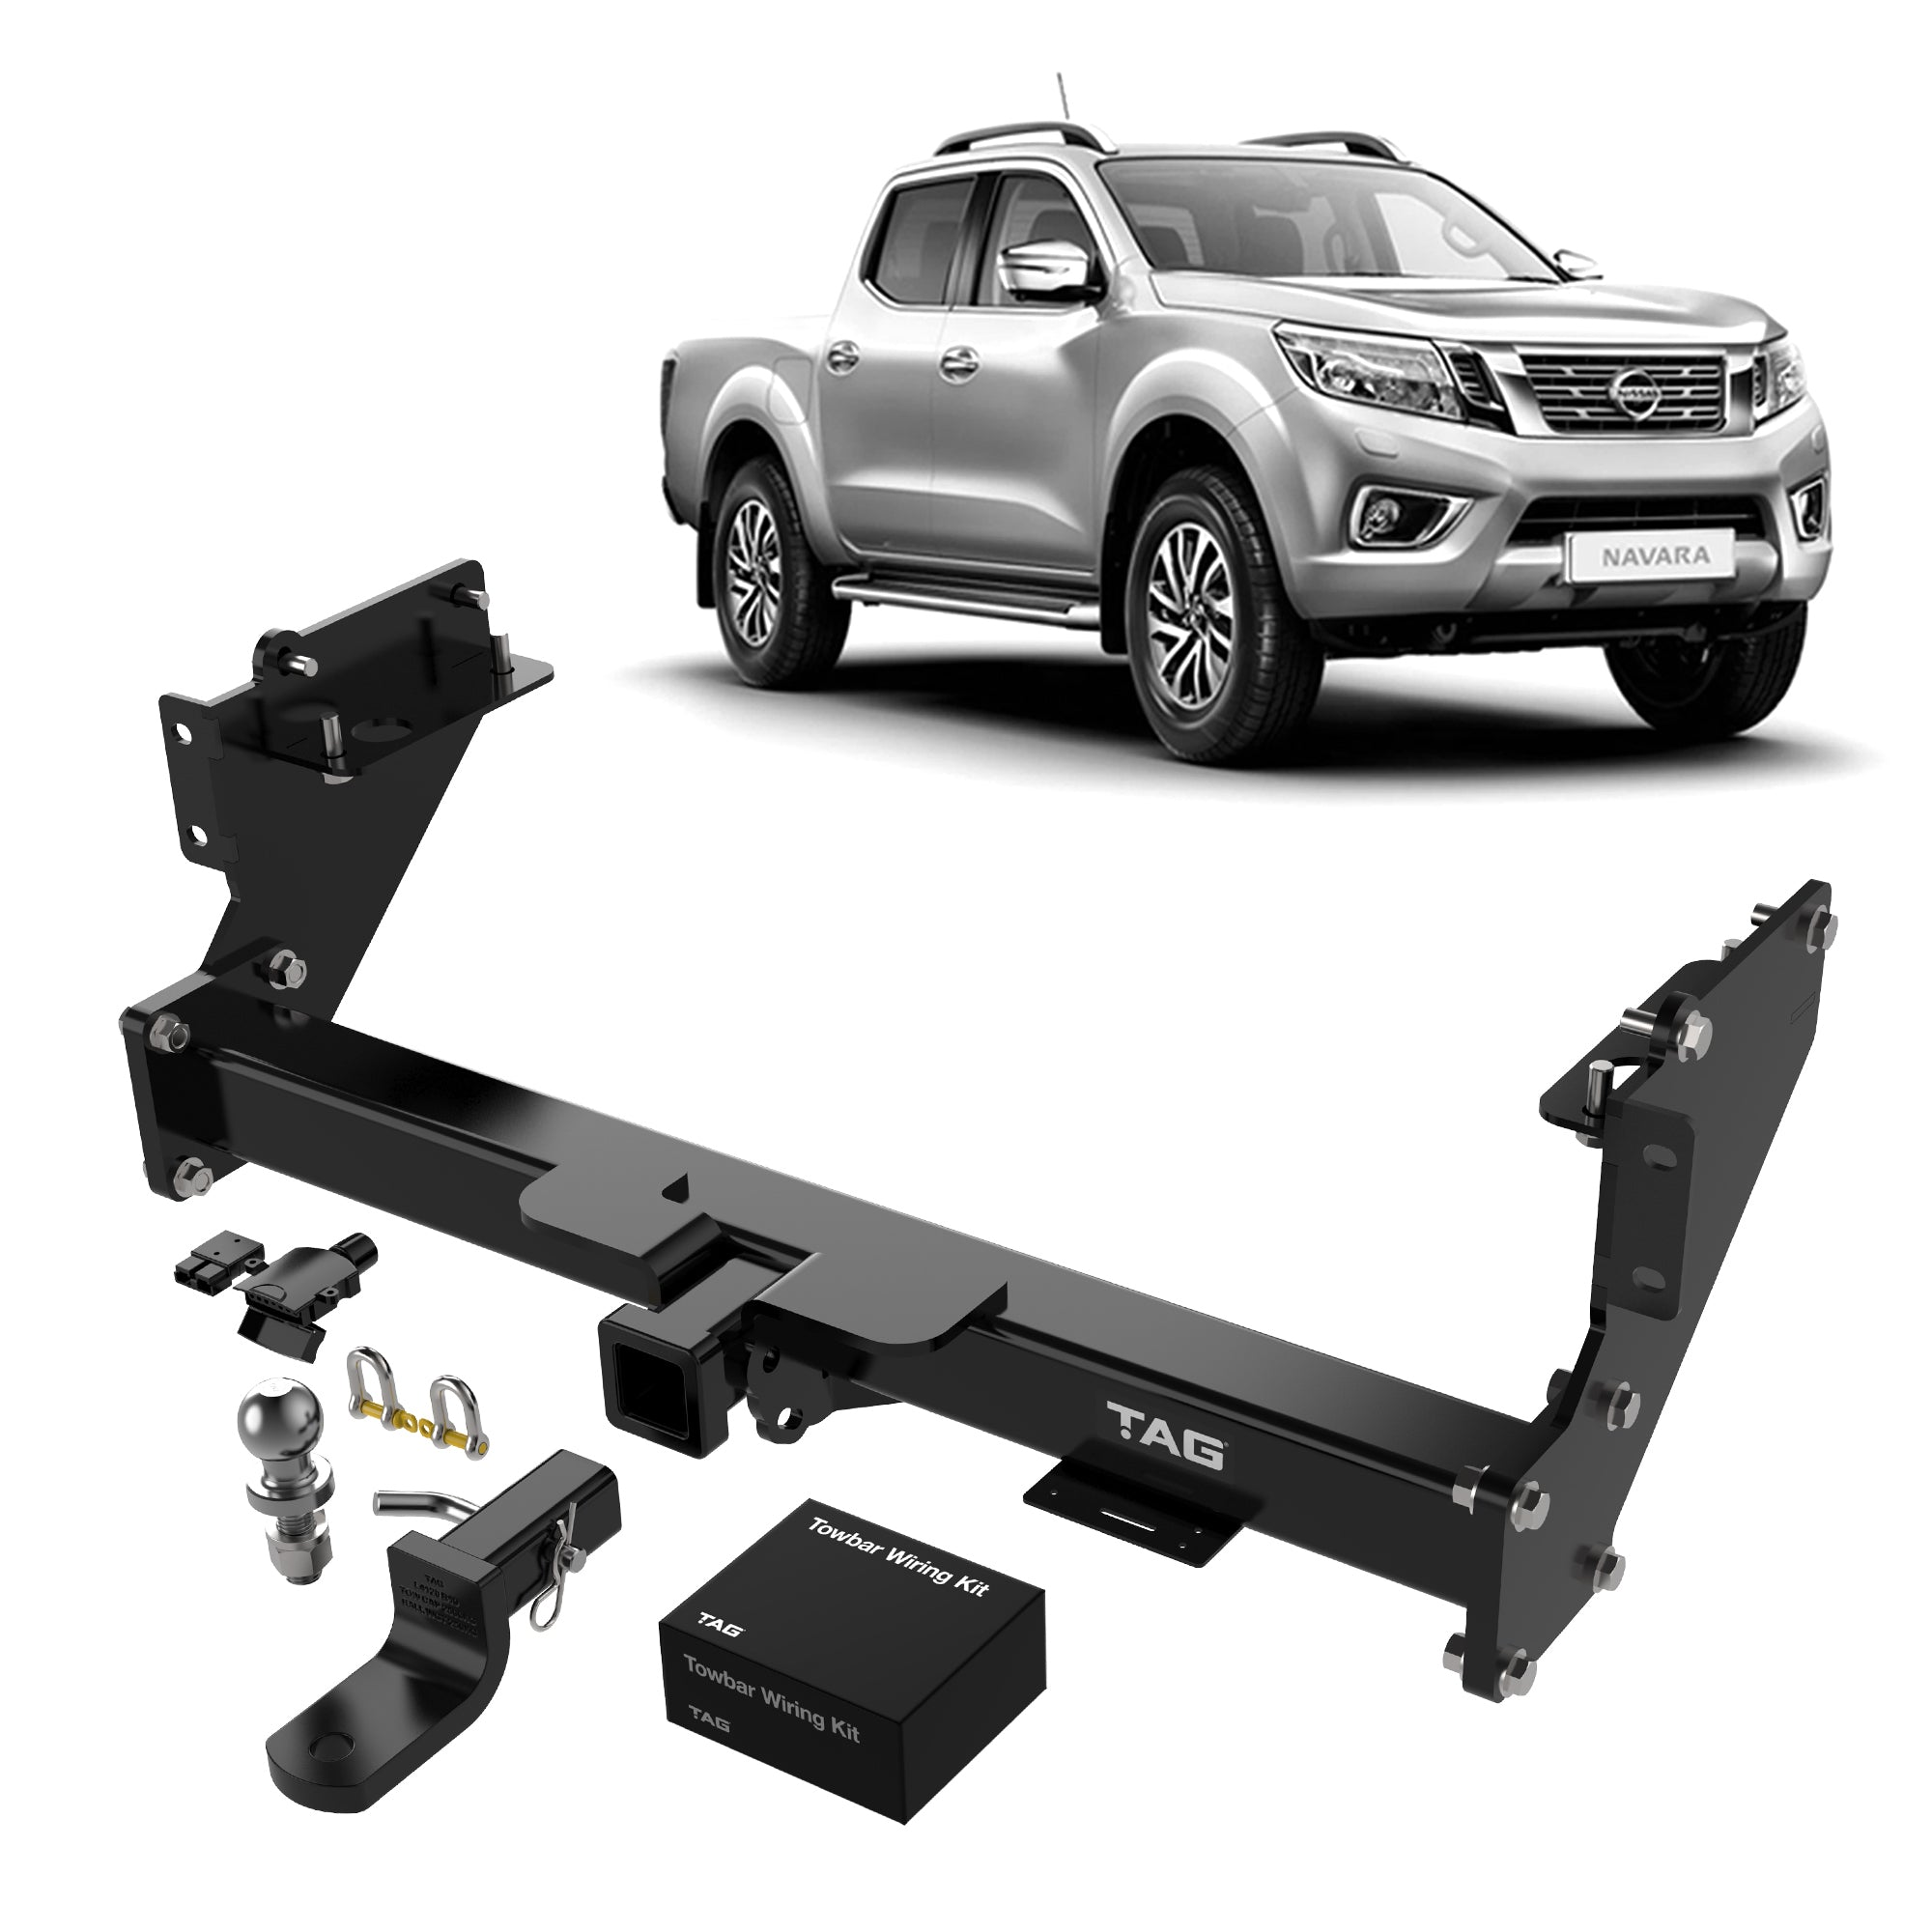 TAG Heavy Duty Towbar to suit Nissan Navara (01/2014 - on) - Direct Fit CAN-Bus Wiring Harness